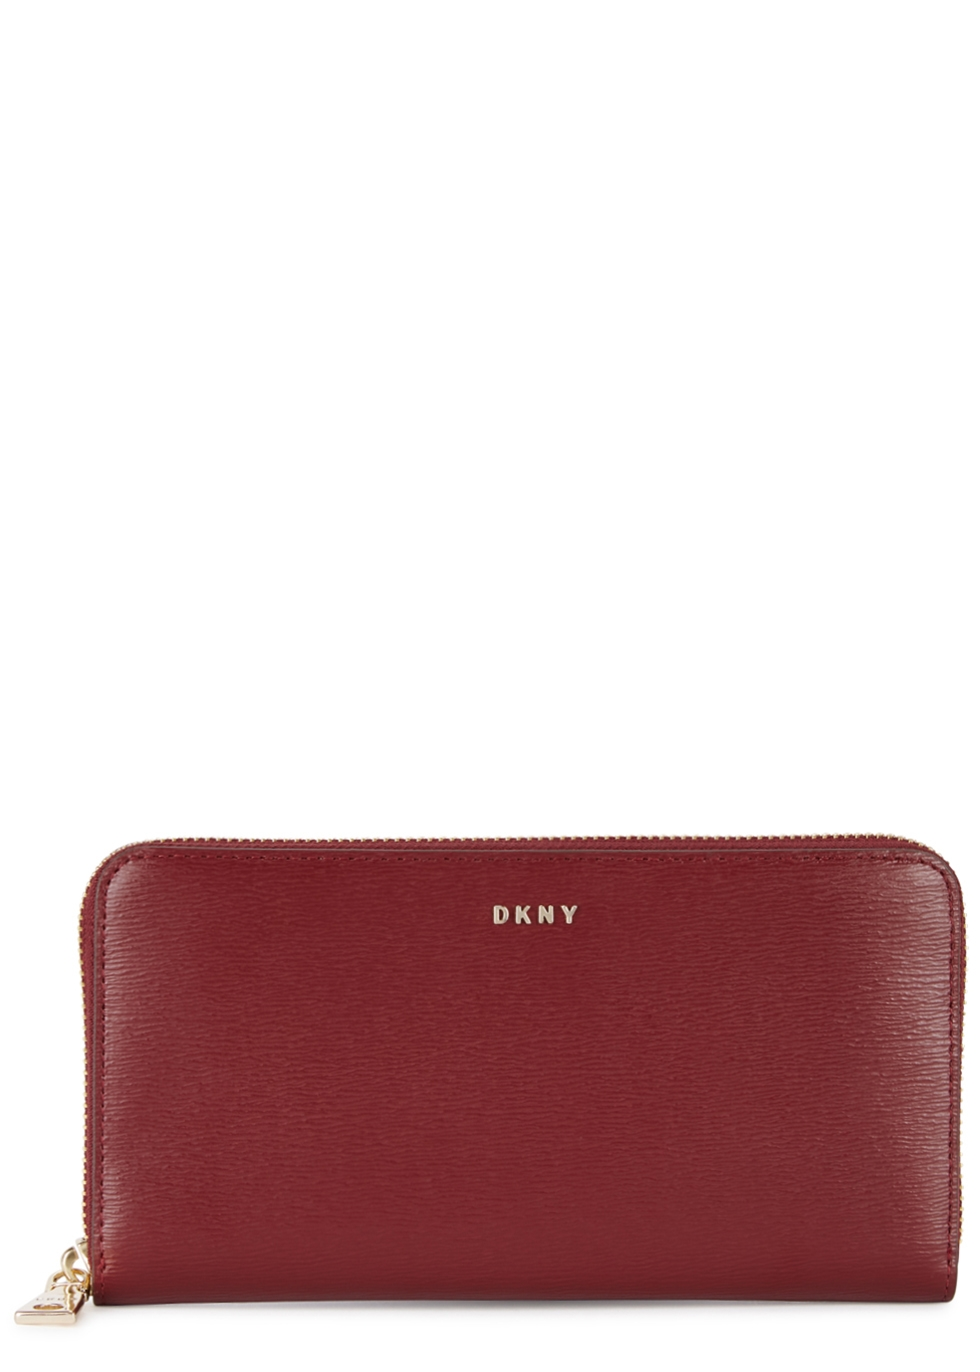 DKNY BRYANT BURGUNDY LEATHER WALLET